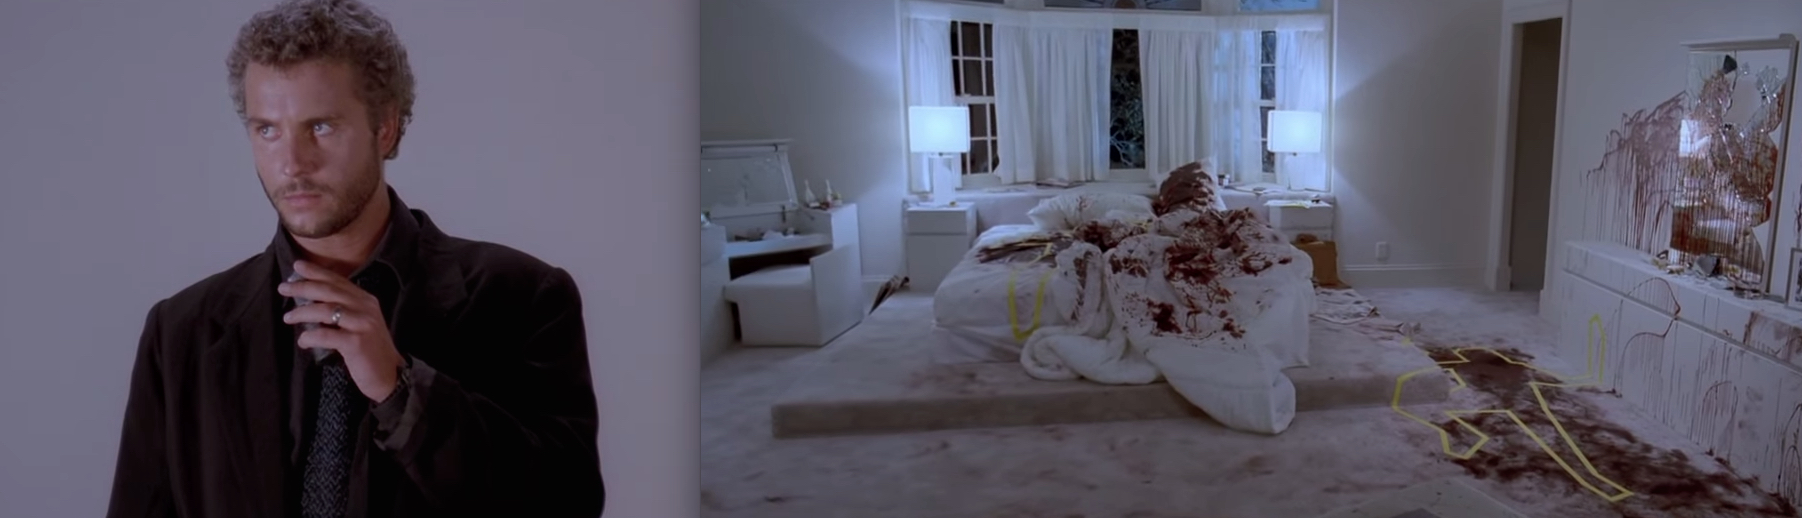 Manhunter Bedroom Scene